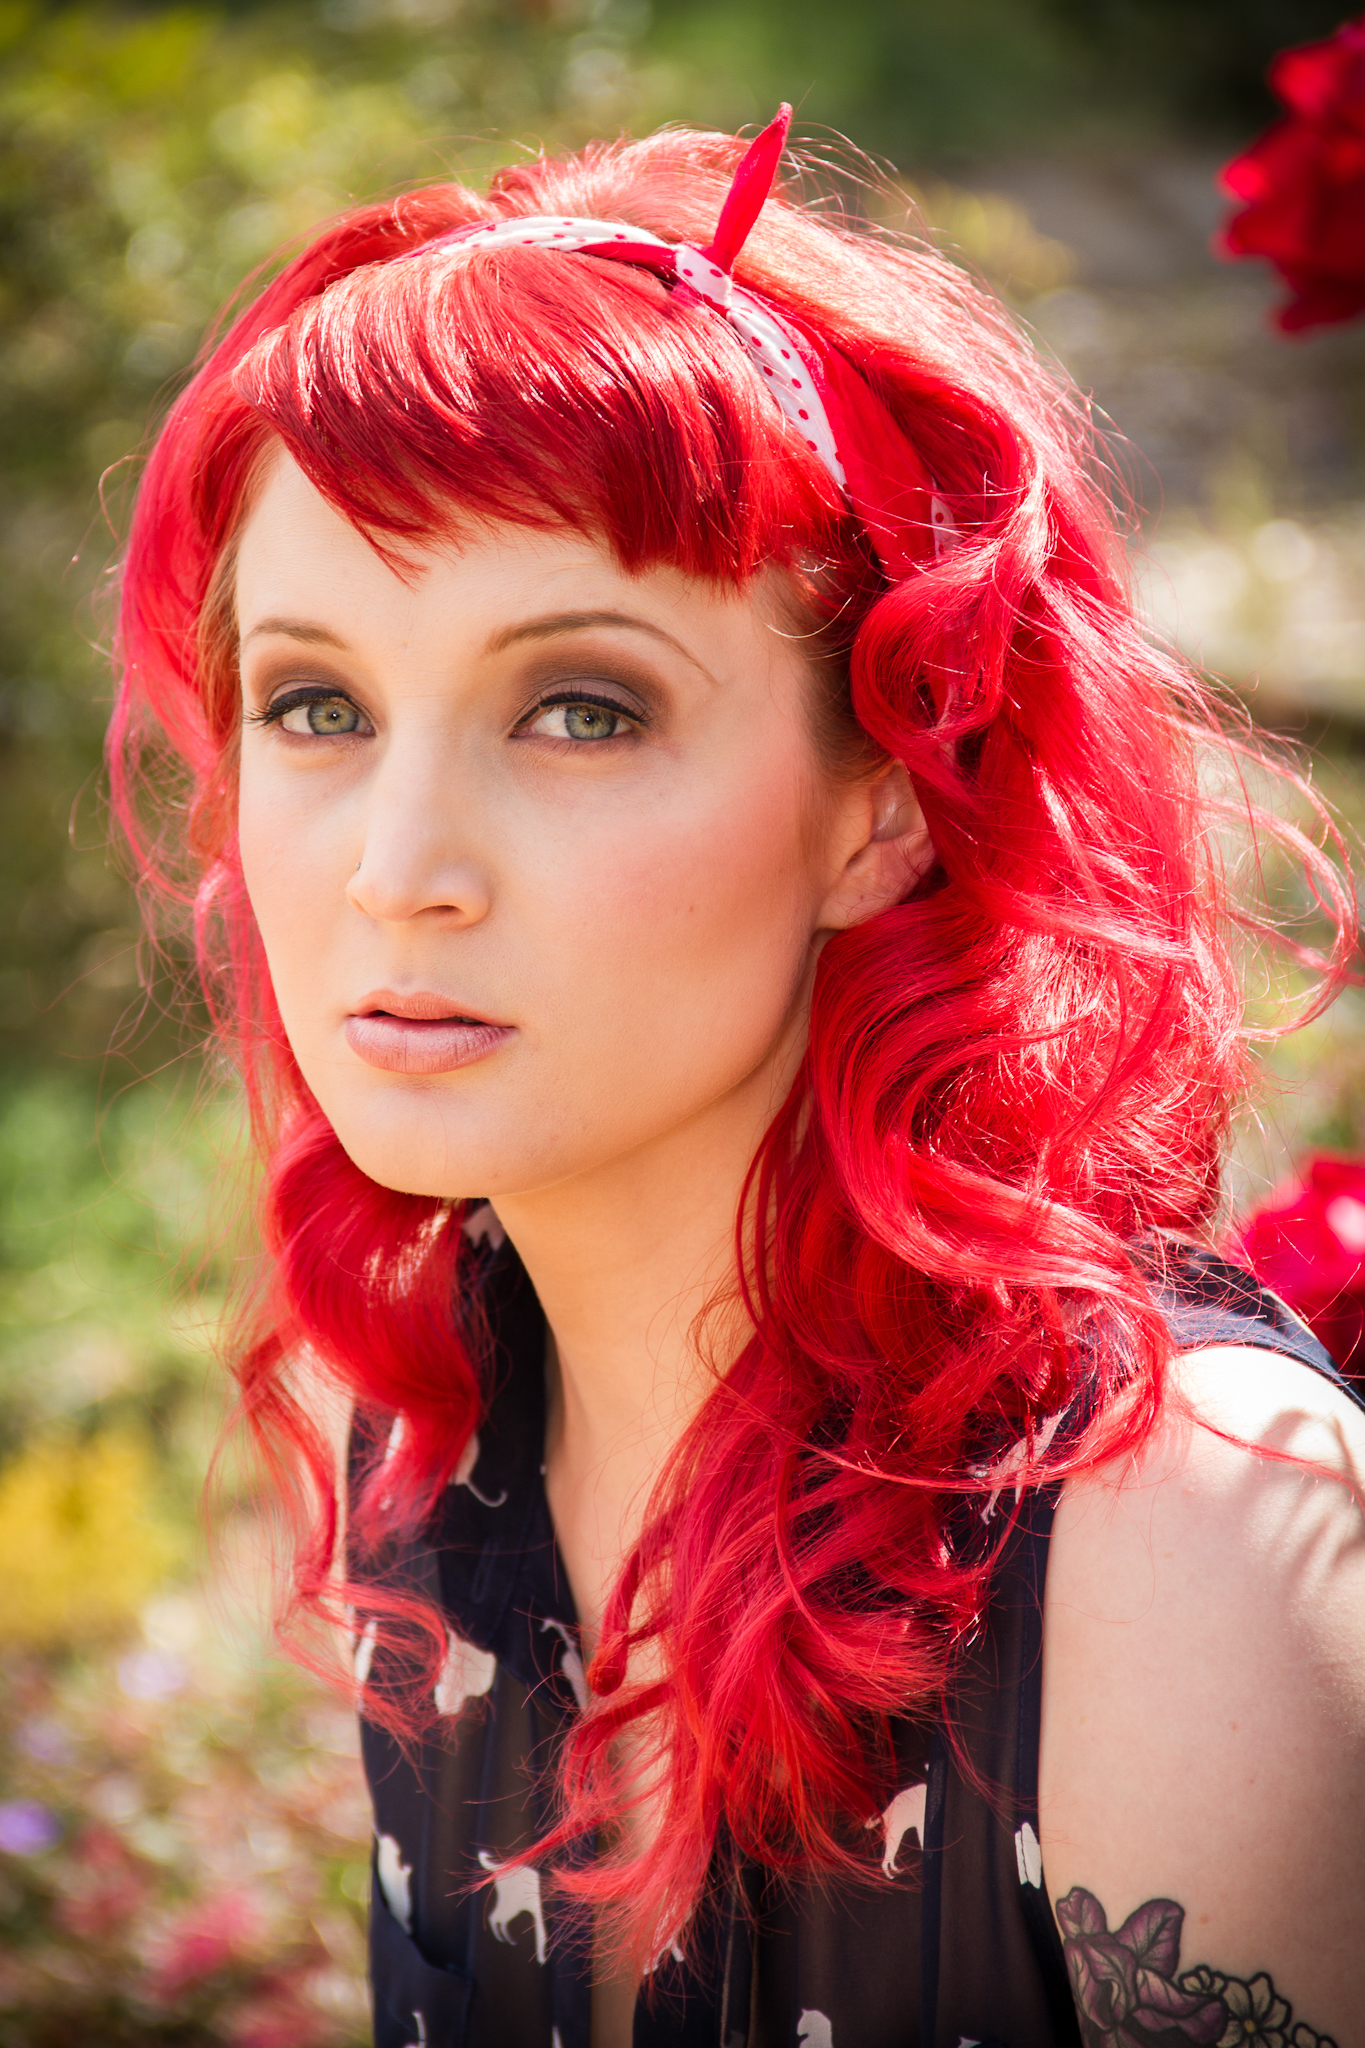 ... red hair #bright red hair #dyed red hair #dyed hair #long red hair